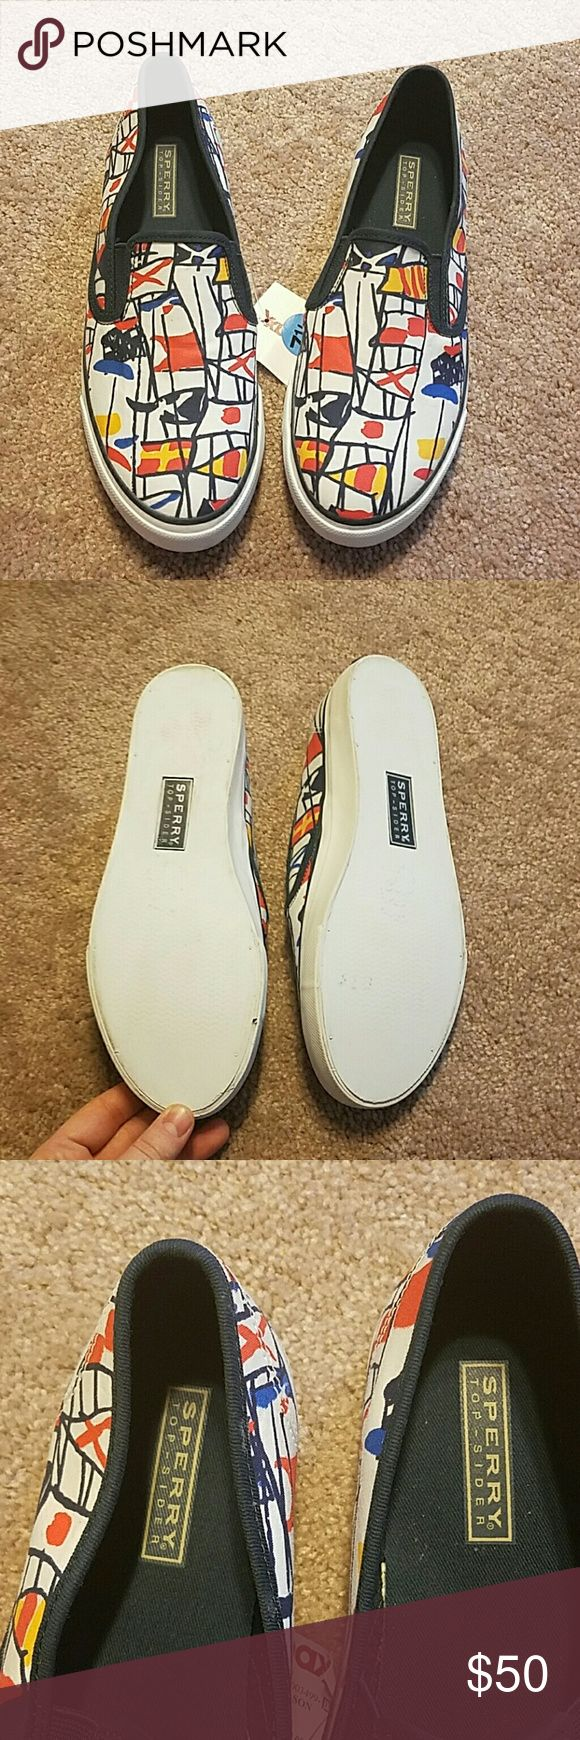 Sperry boat flag canvas slip ons Never worn. Some wear on bottom from store try-ons. Sperry Top-Sider Shoes Sneakers